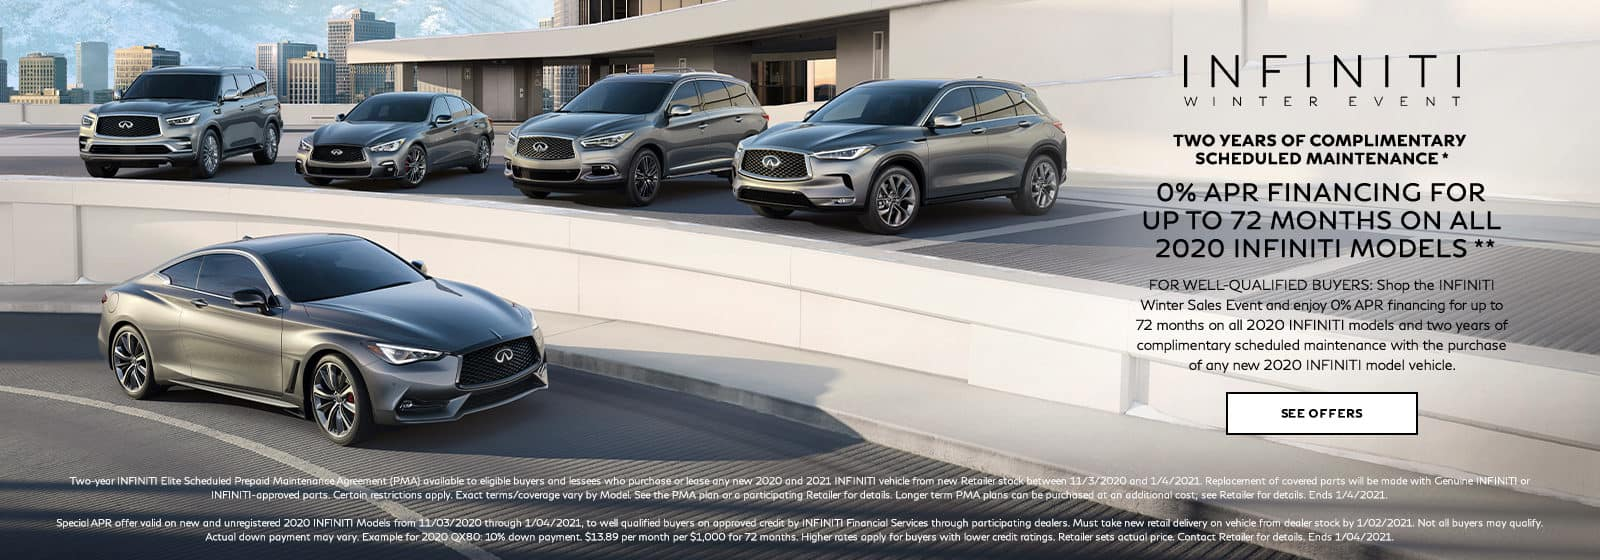 0% APR financing for up to 72 months on all 2020 INFINITI Models with two years of complimentary scheduled maintenance with the purchase of a new 2020 INFINITI model vehicle. For well-qualified buyers. Restrictions may apply. See retailer for complete details. Offer ends 1/4/2021